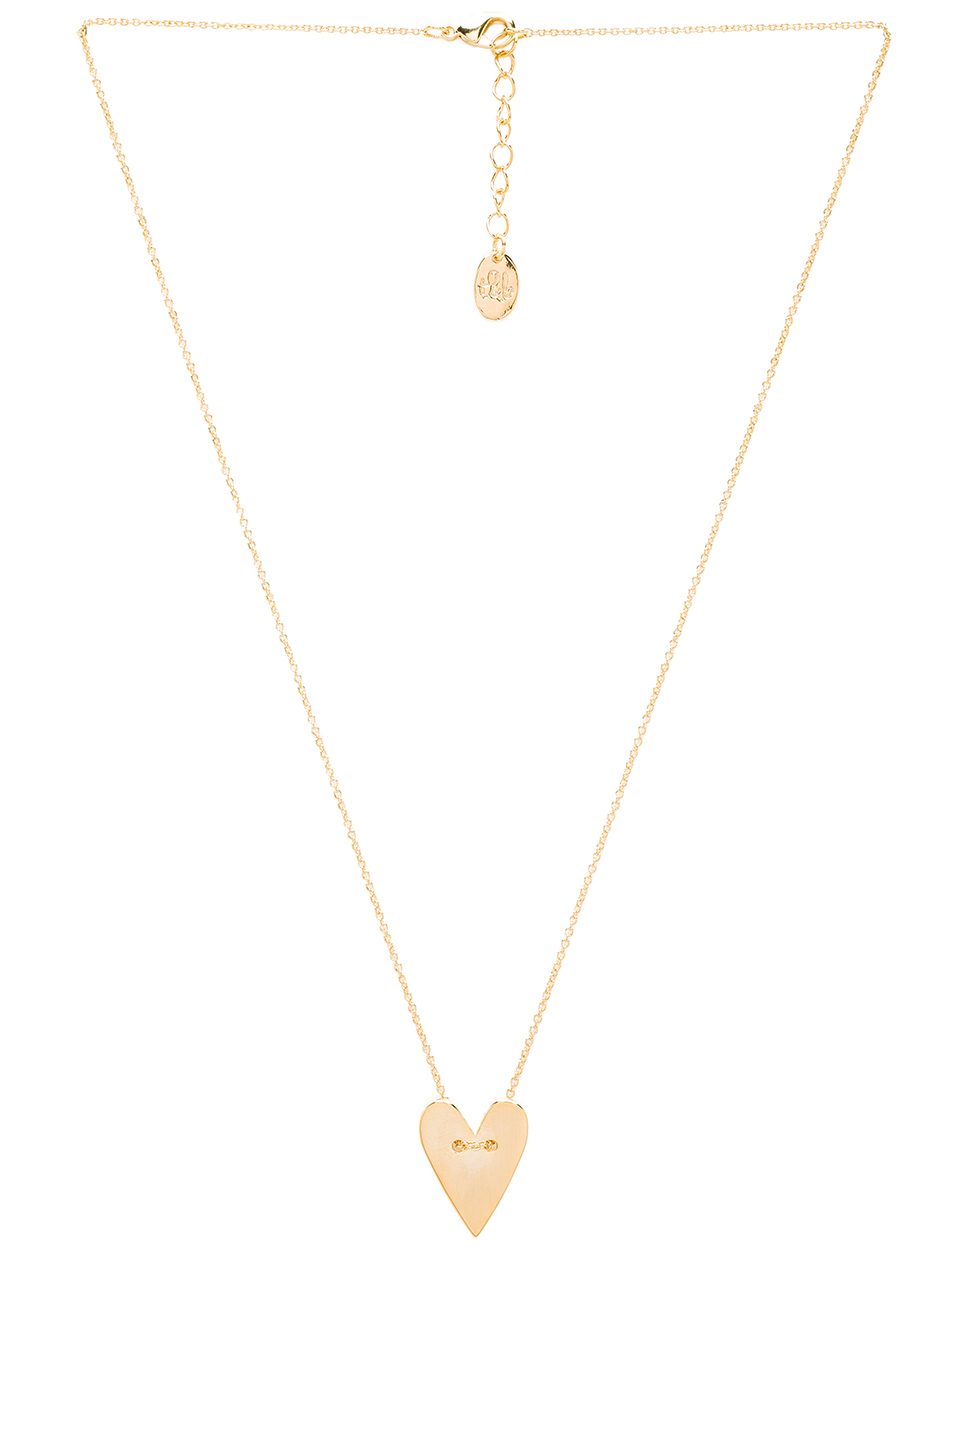 HEART NECKLACE - $65